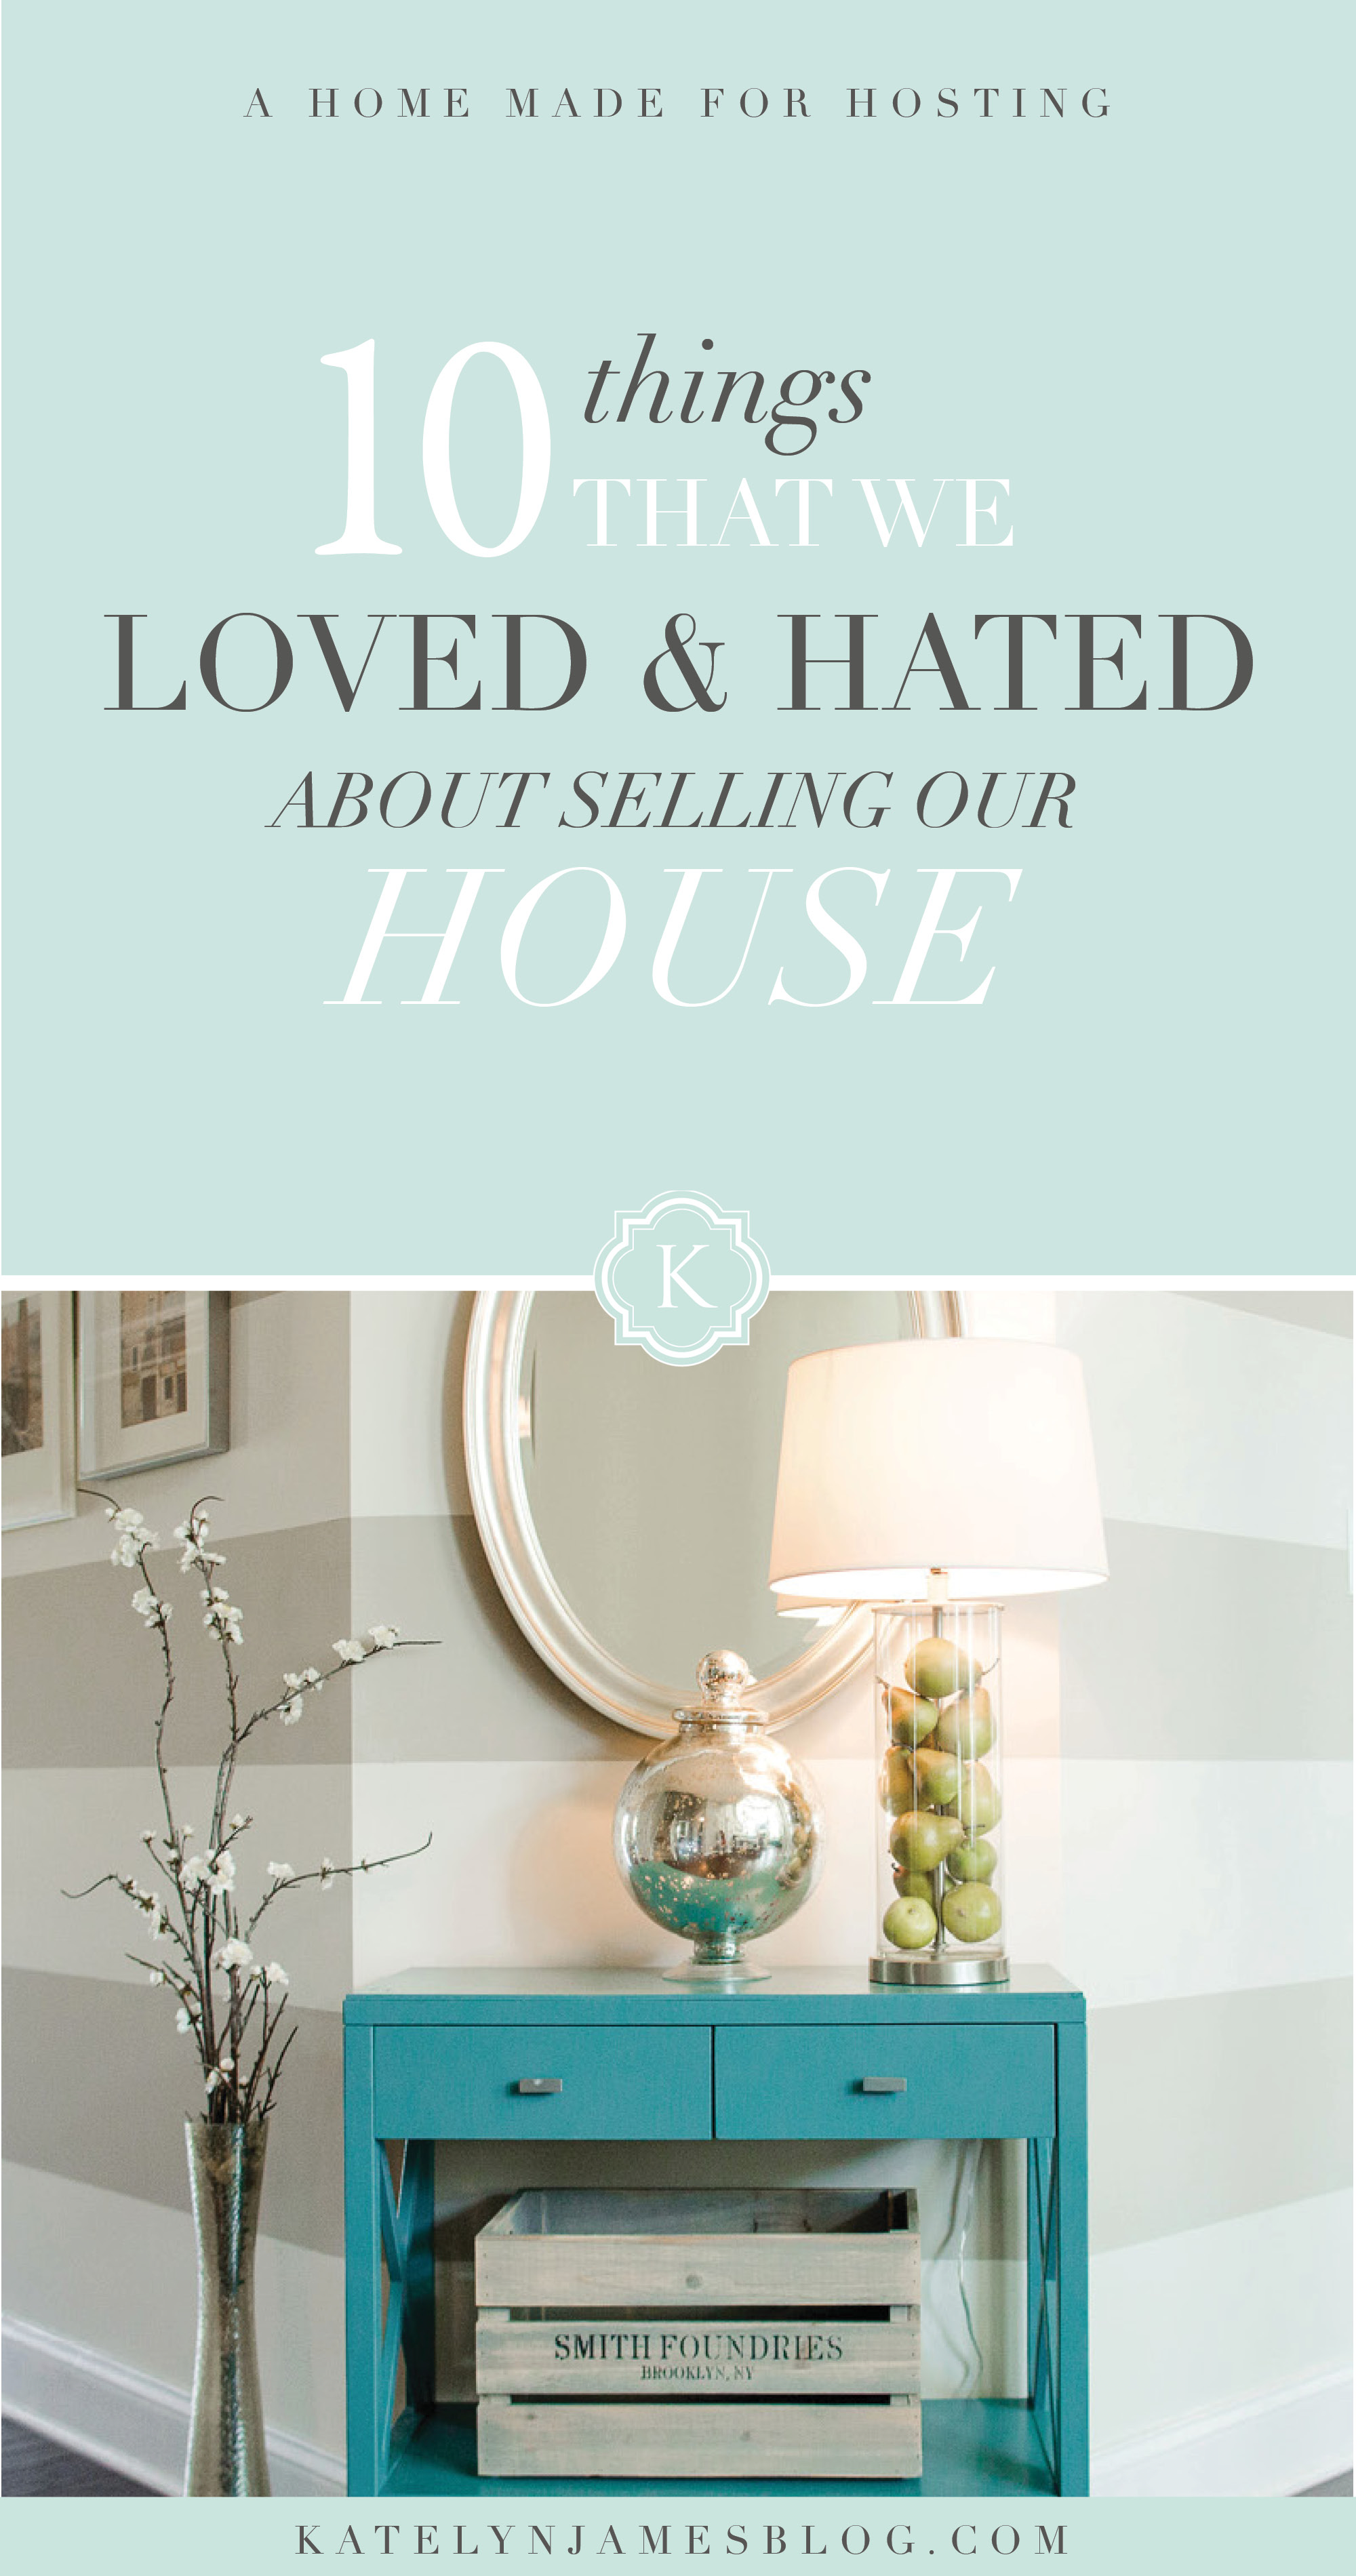 10 Things we Loved & Hated about Selling Our House | By Katelyn James Photography